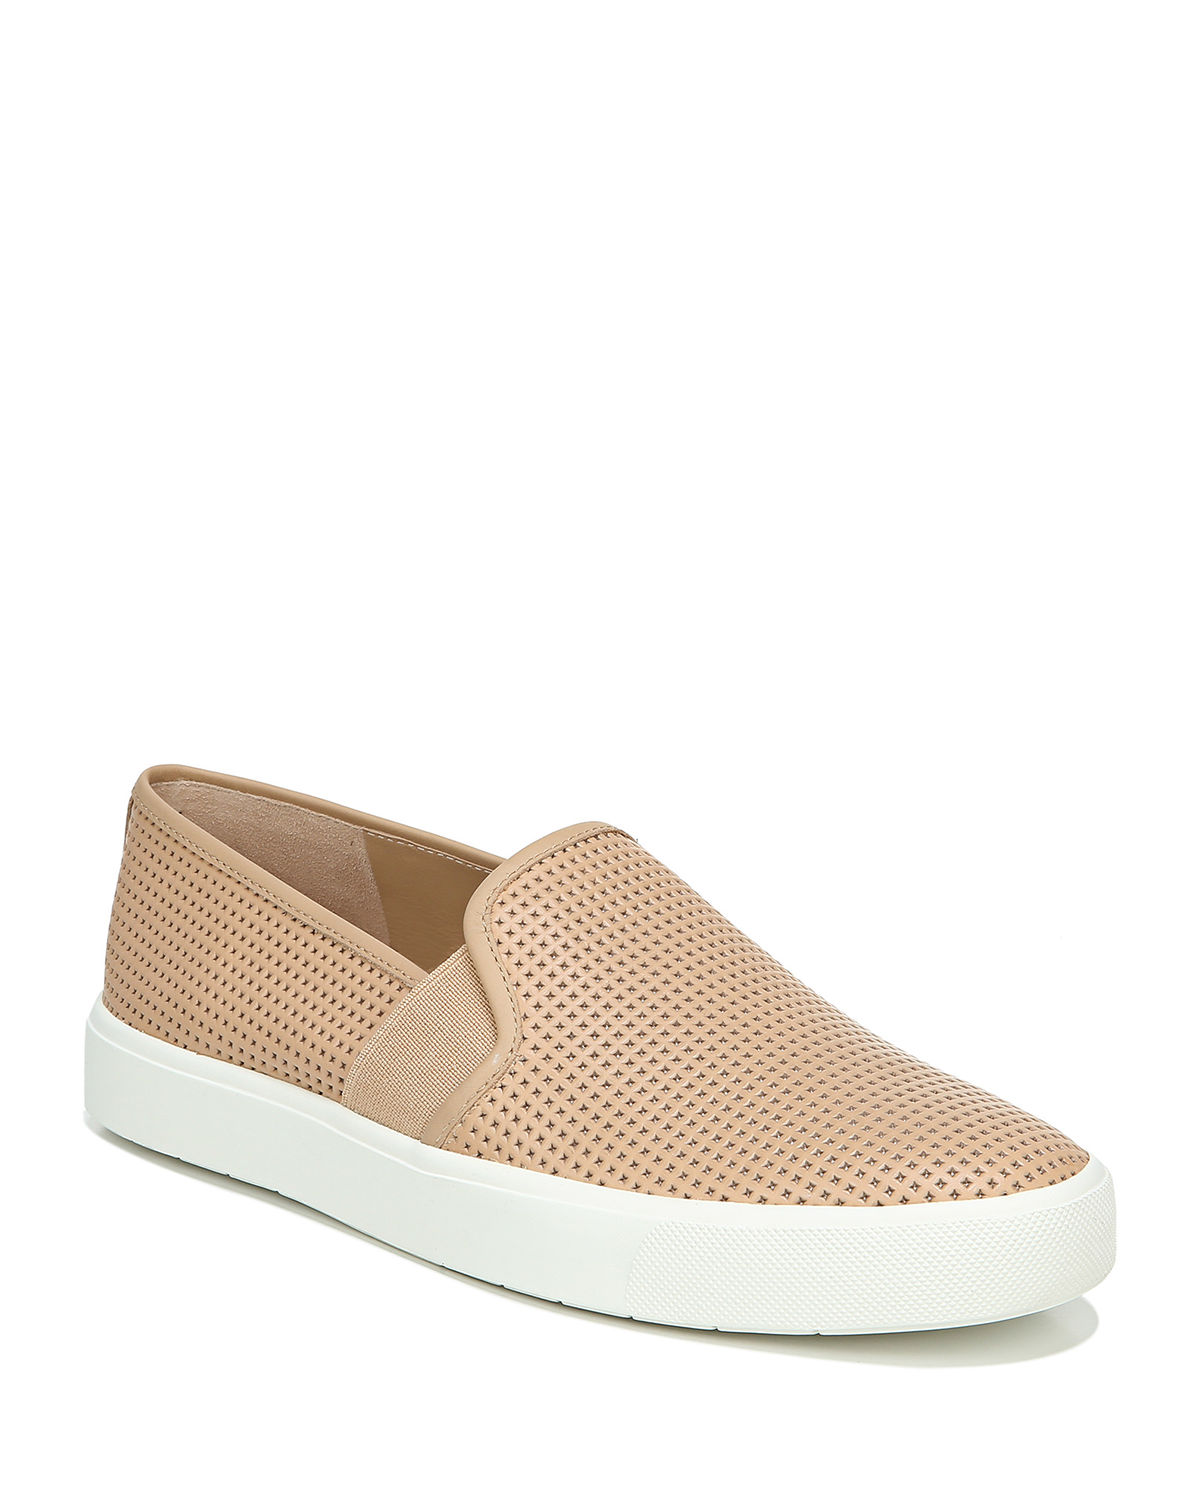 Blair Perforated Leather Slip-On Sneakers